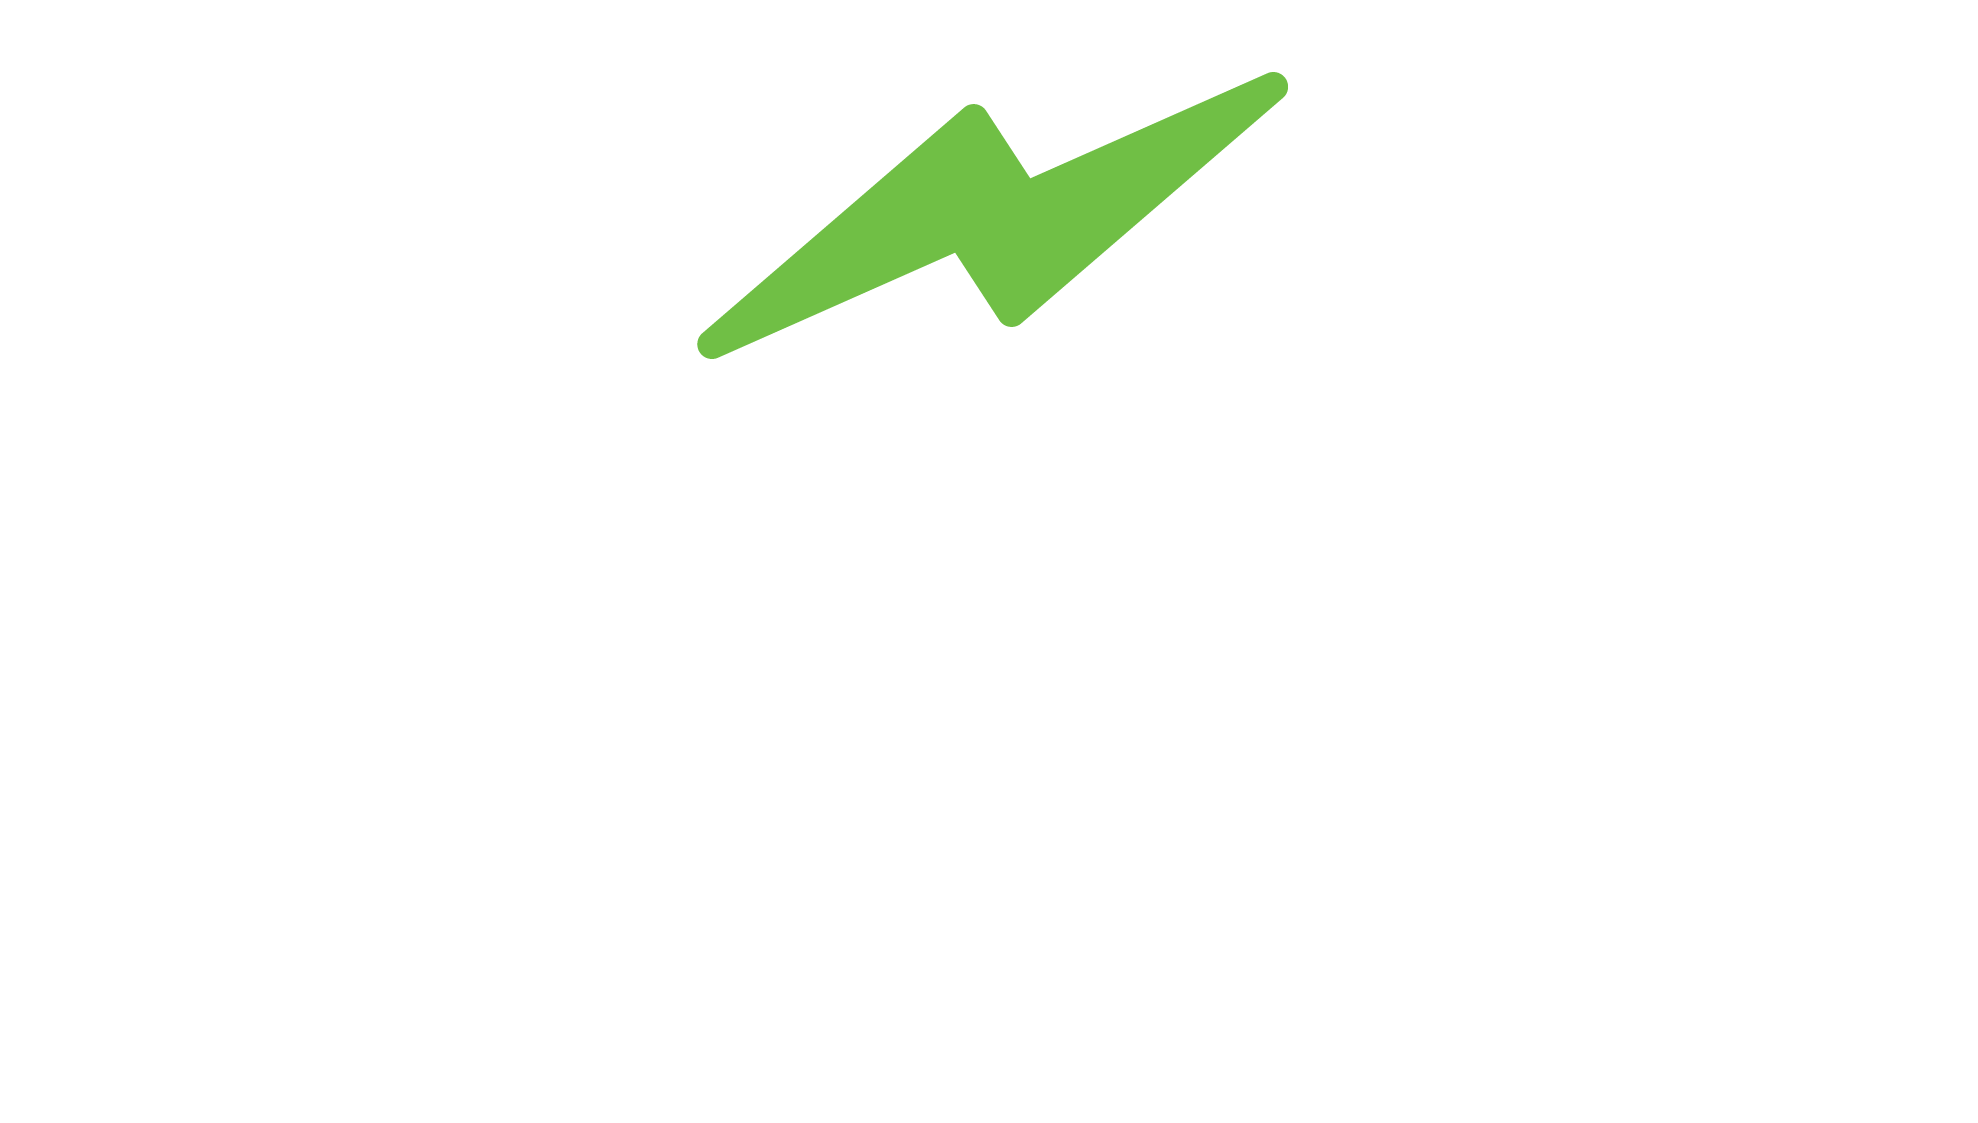 Cotswold-eBikes-MASTER-WO-FLASH.png